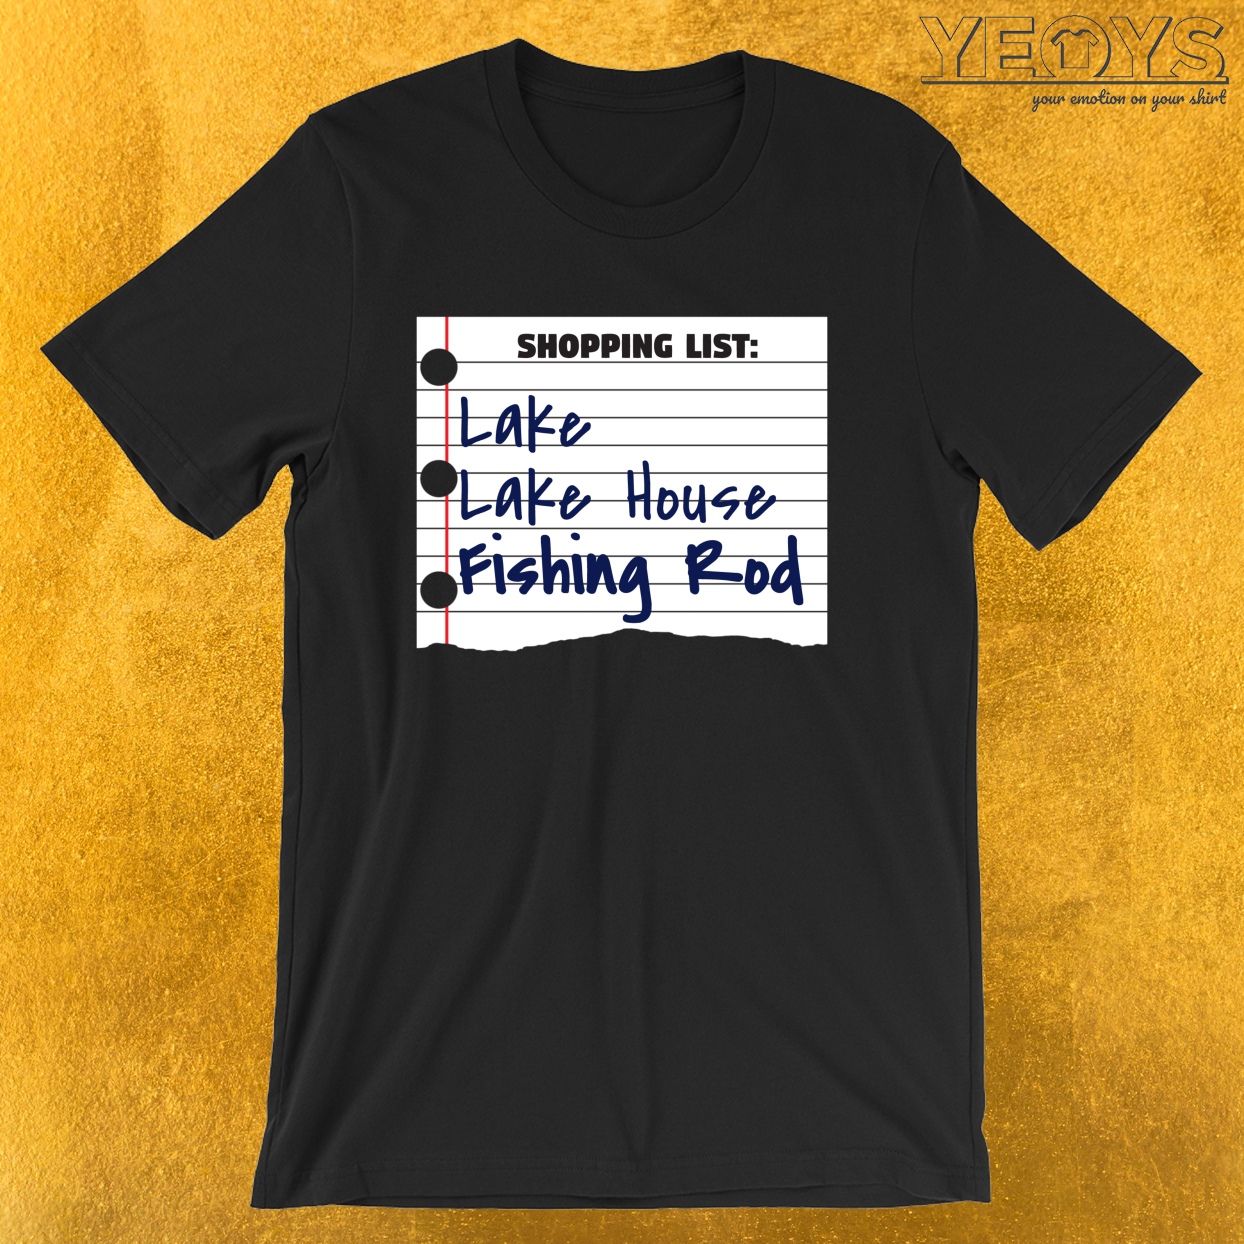 Shopping List Lake Lake House Fishing Rod – Old Fisherman Tee